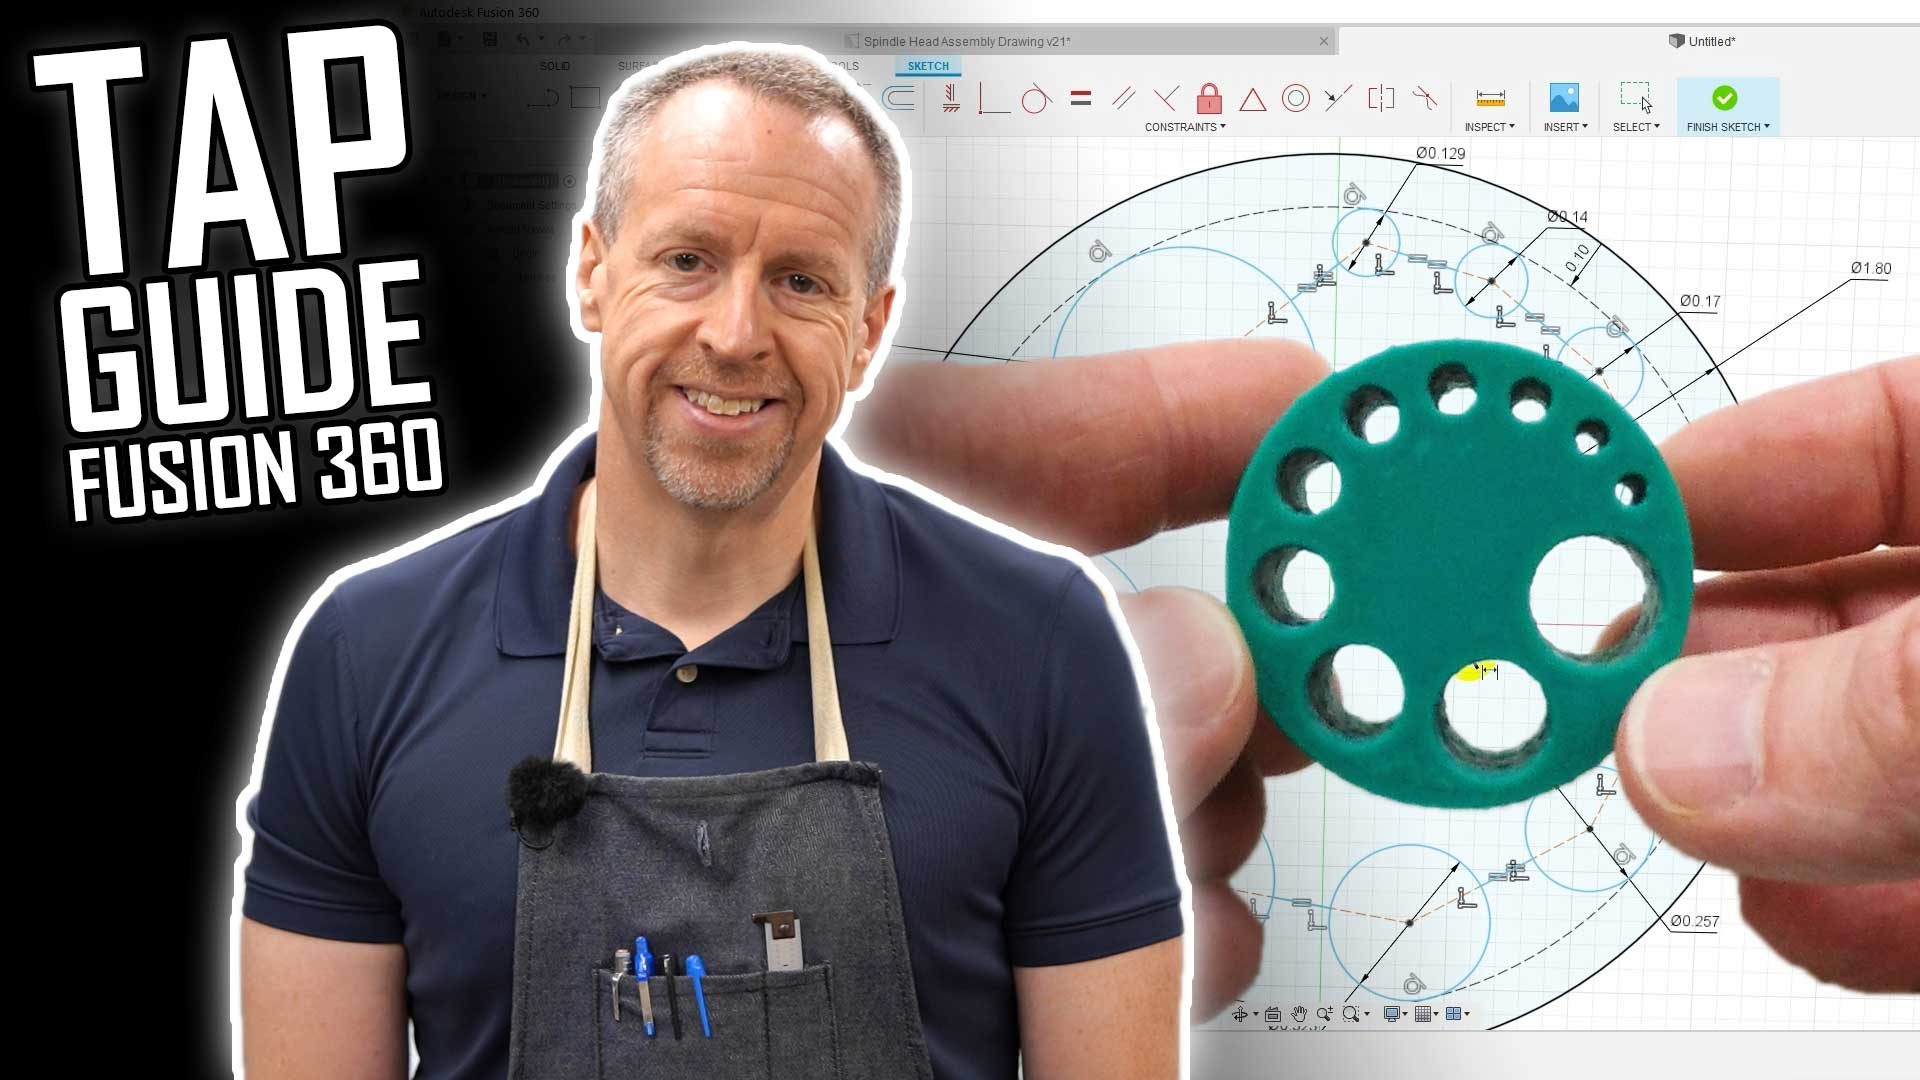 Designing and 3D Printing a Tap Guide Block in Fusion 360